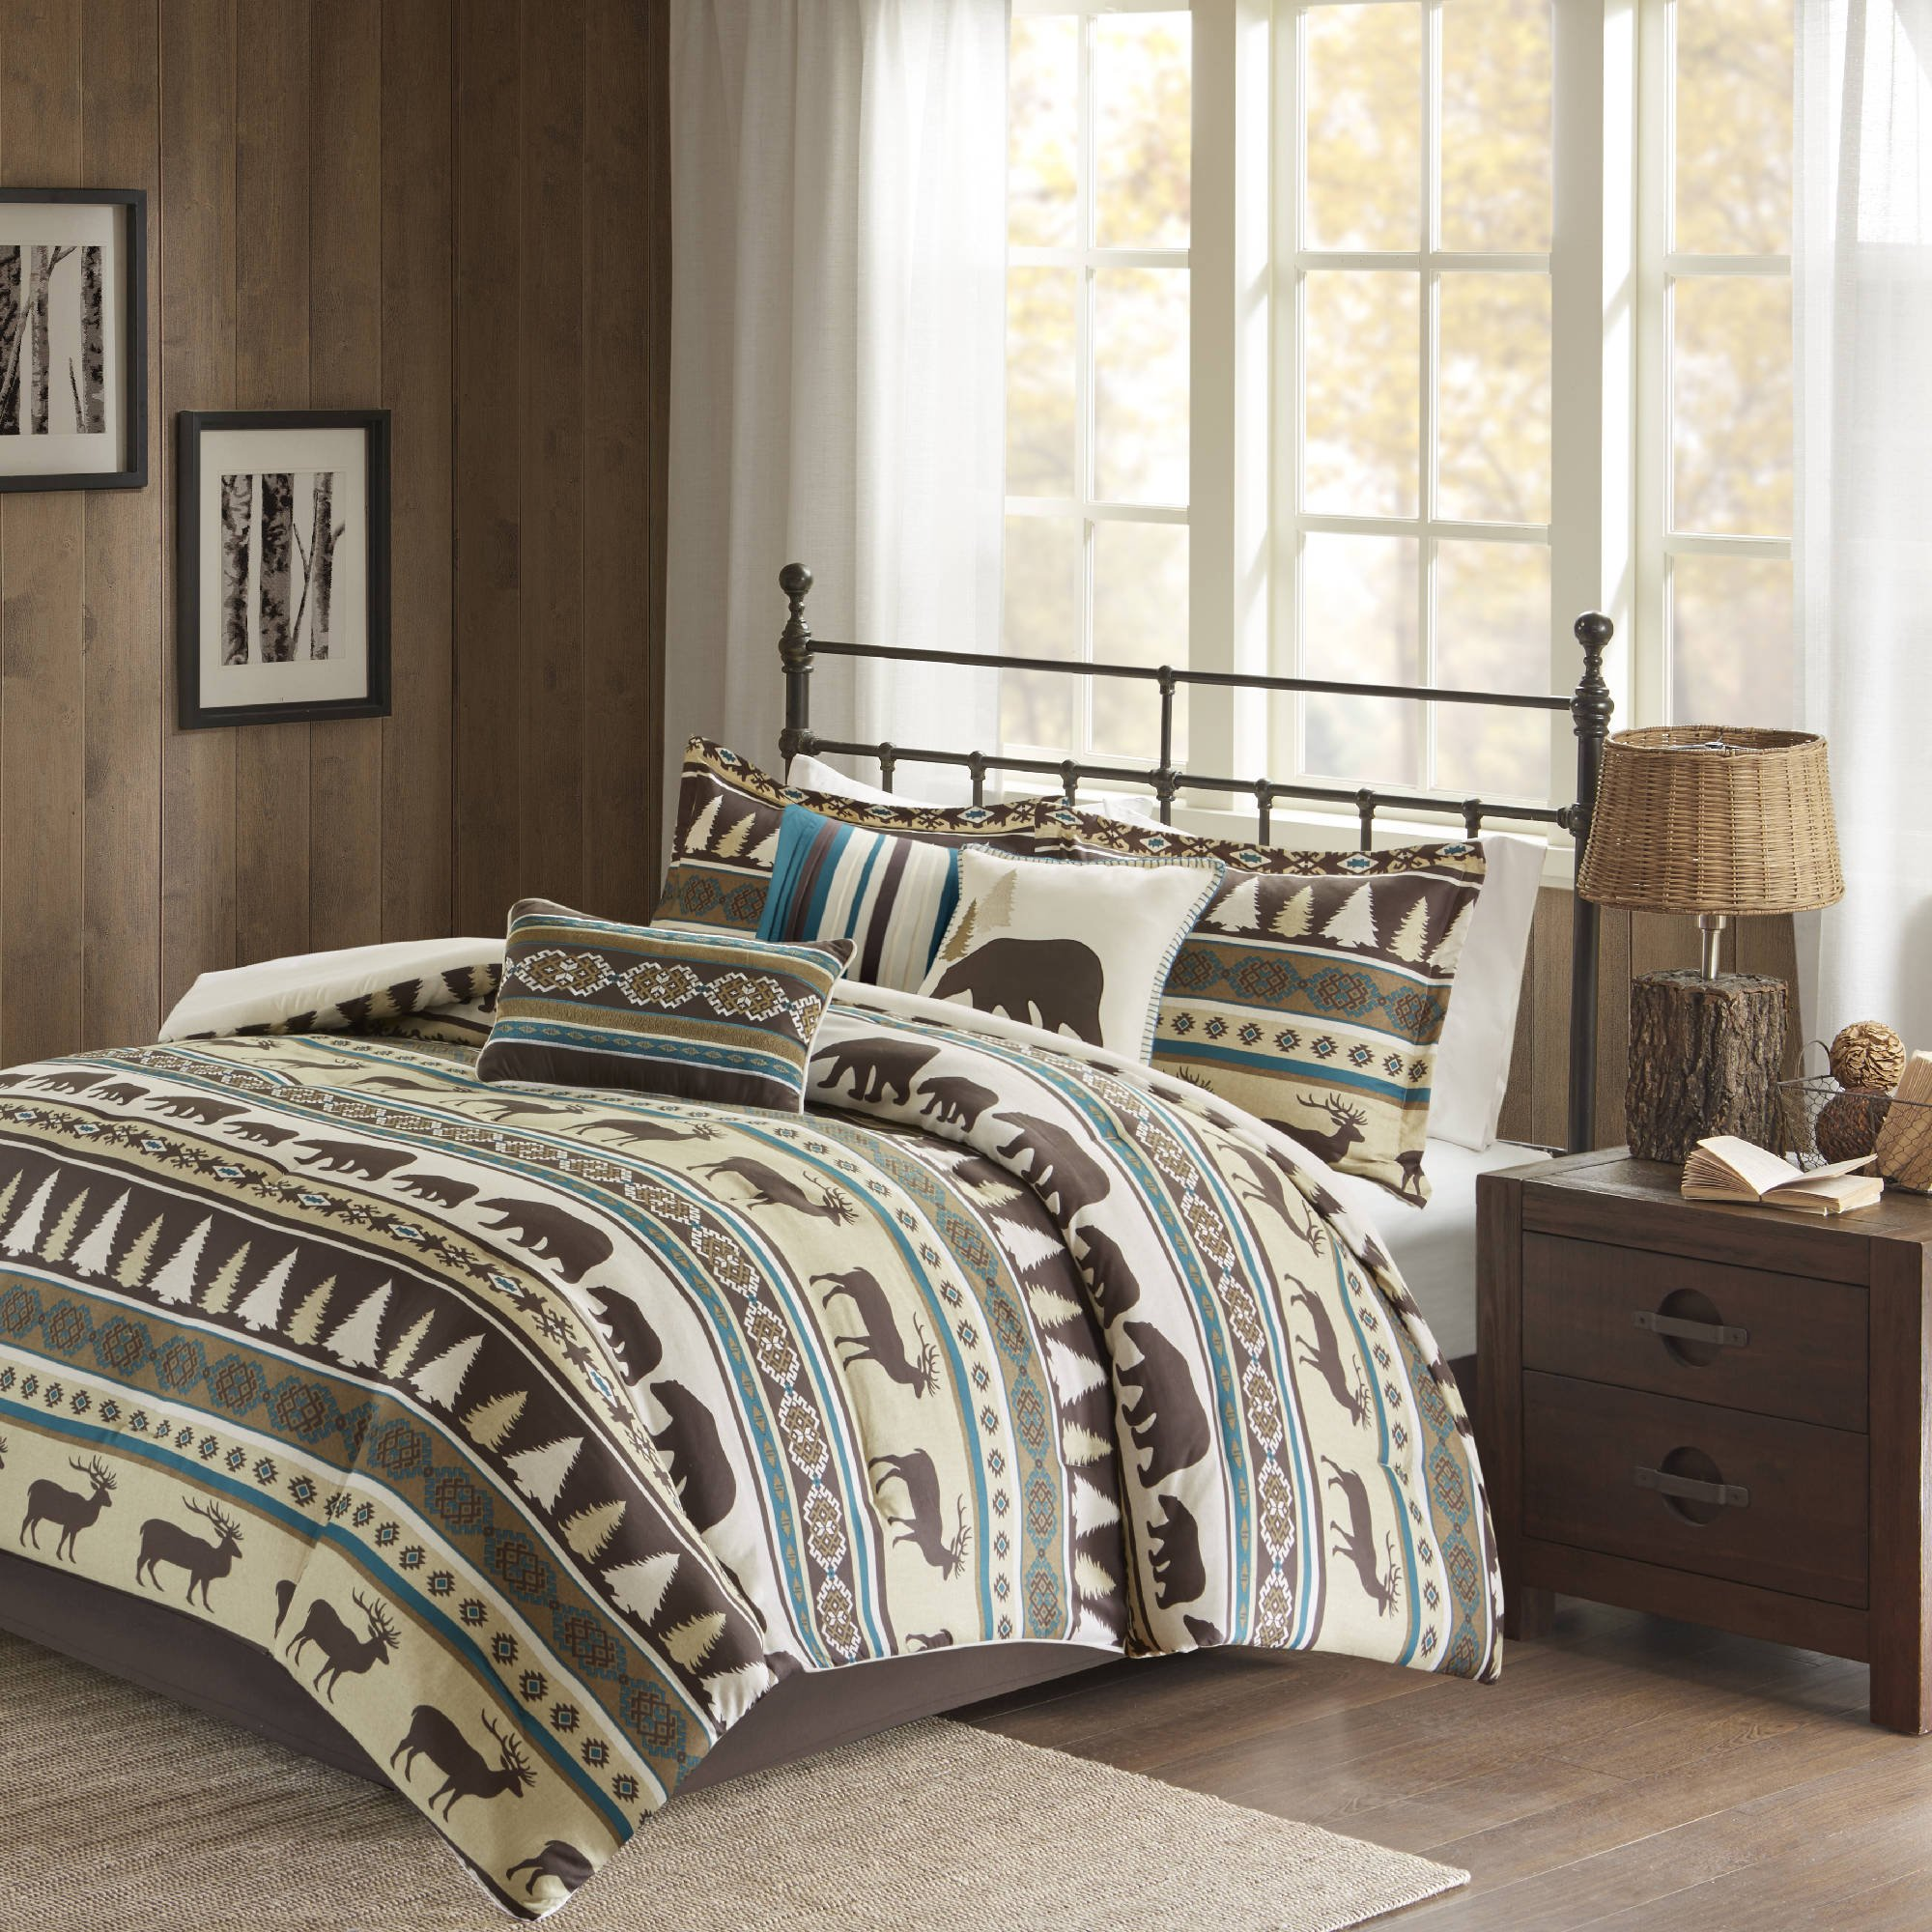 7 Piece Teal Blue White Brown Deer Pattern Comforter Queen Set, Hunting Bedding Bear Themed Cabin Lodge Elk Southwest Warm Cozy Overfilled Animal Print Montana Pine Trees Butte, Polyester